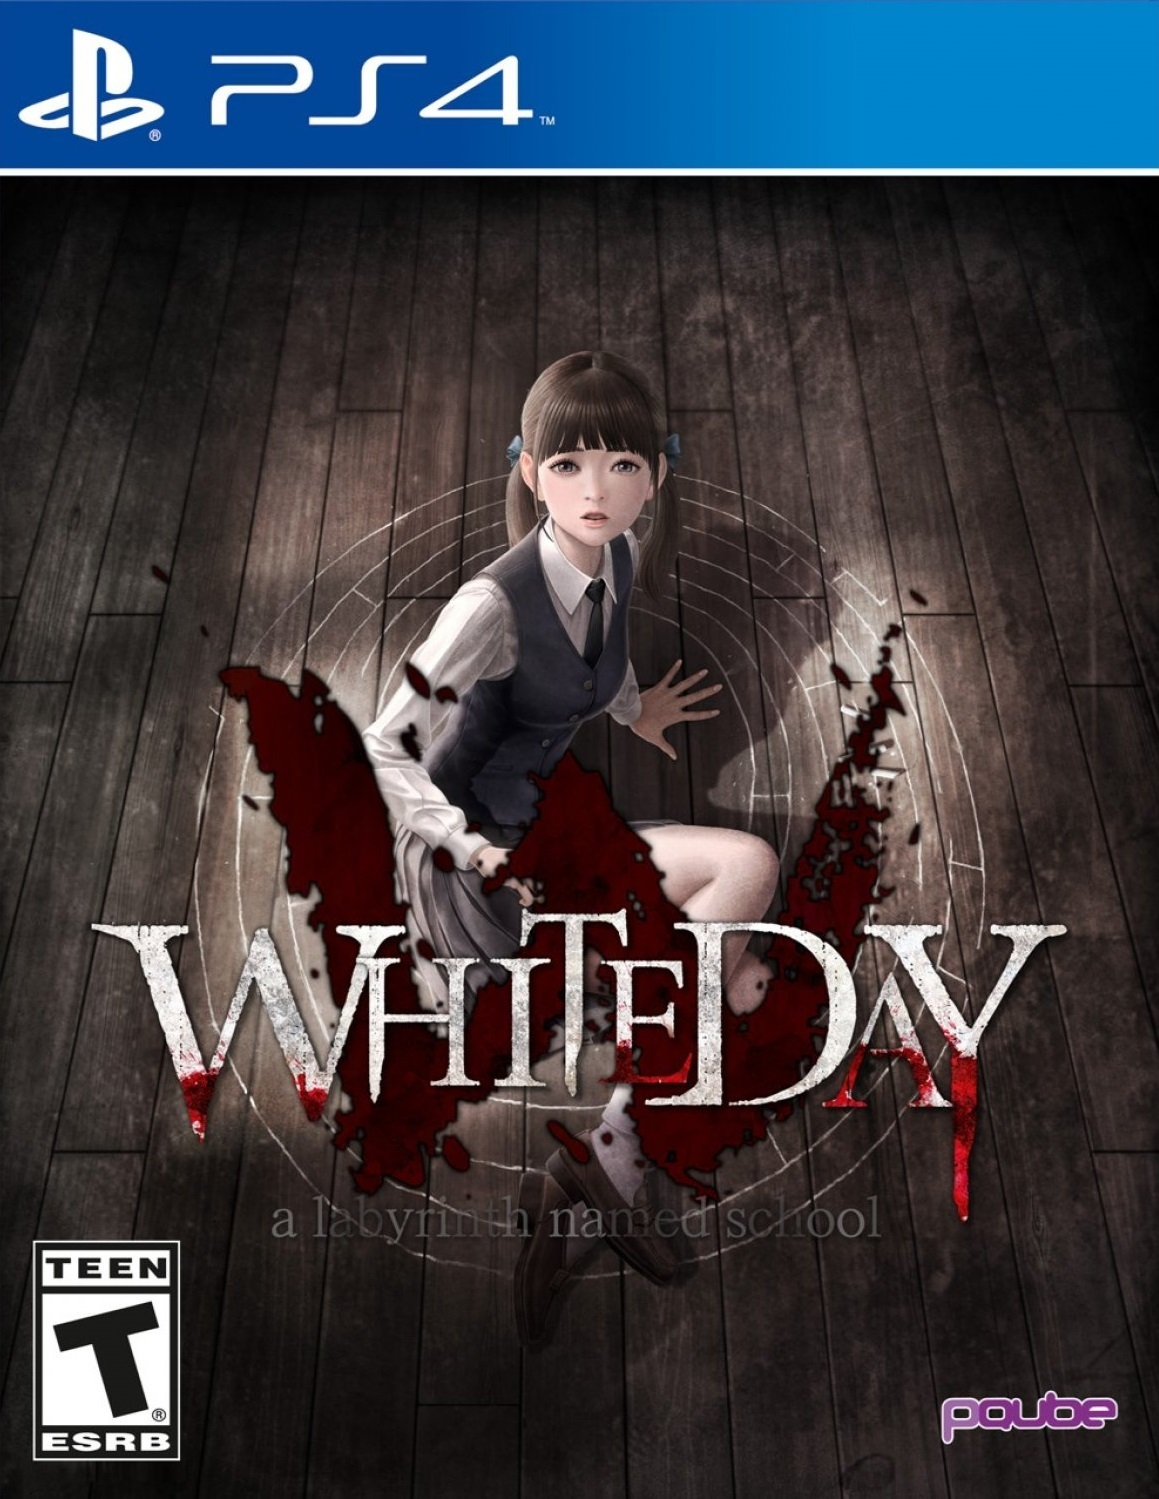 white-day-a-labyrinth-named-school-english-chinese-subs-508083.2.jpg